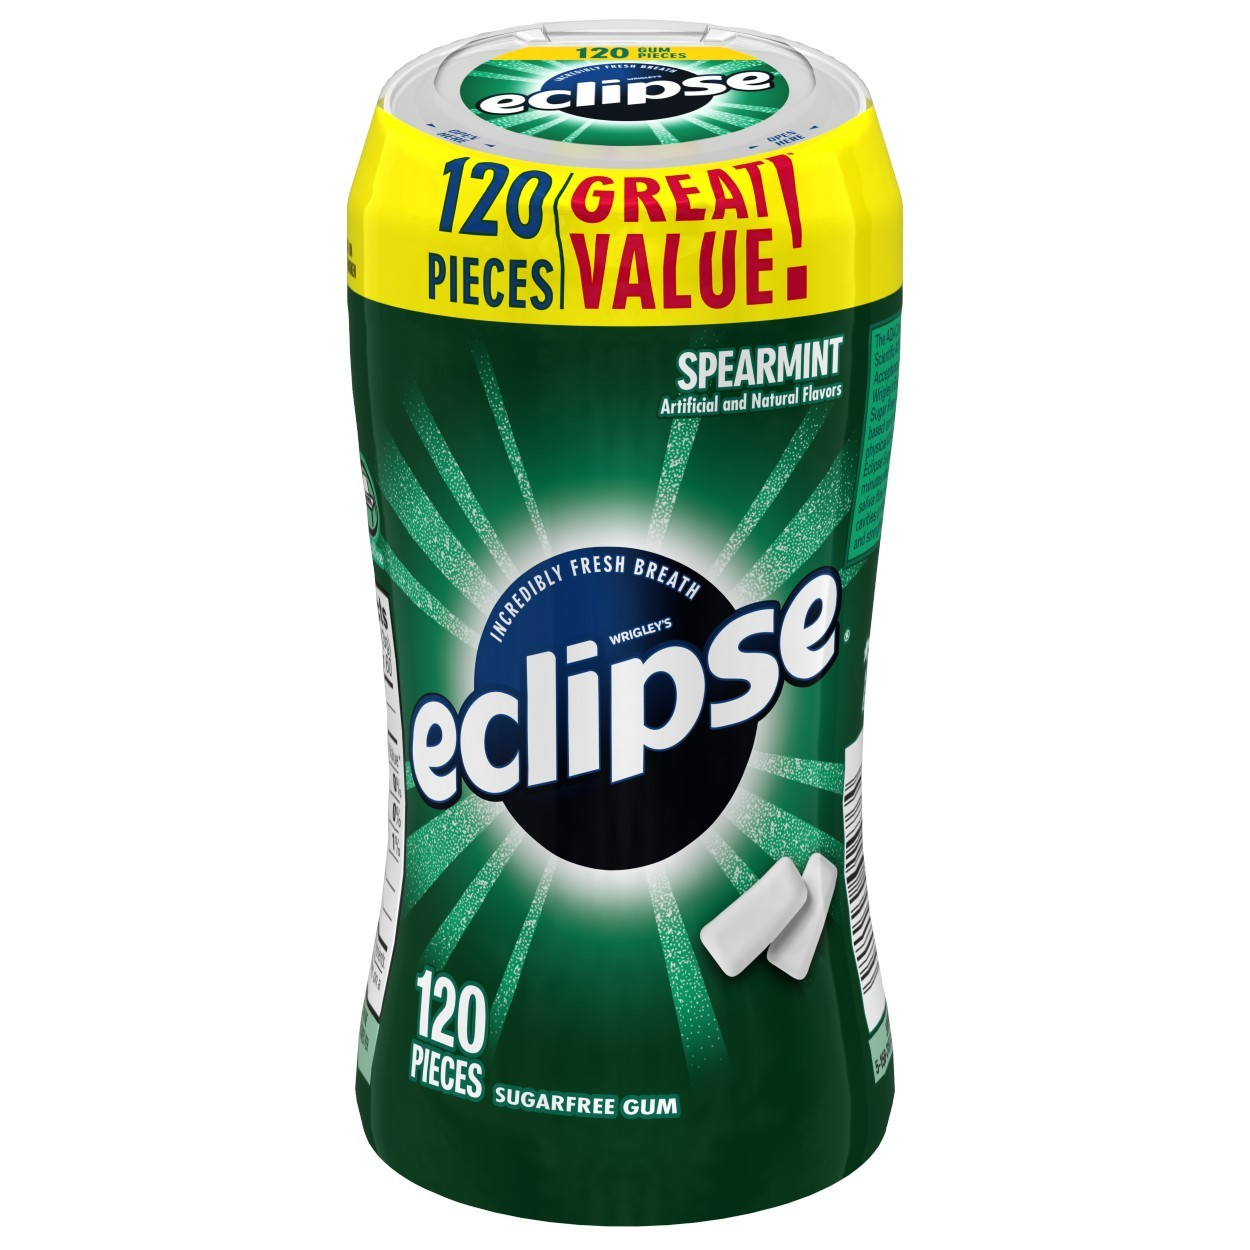 (2 Pack) Eclipse, Sugar Free Spearmint Chewing Gum, 120 Pcs